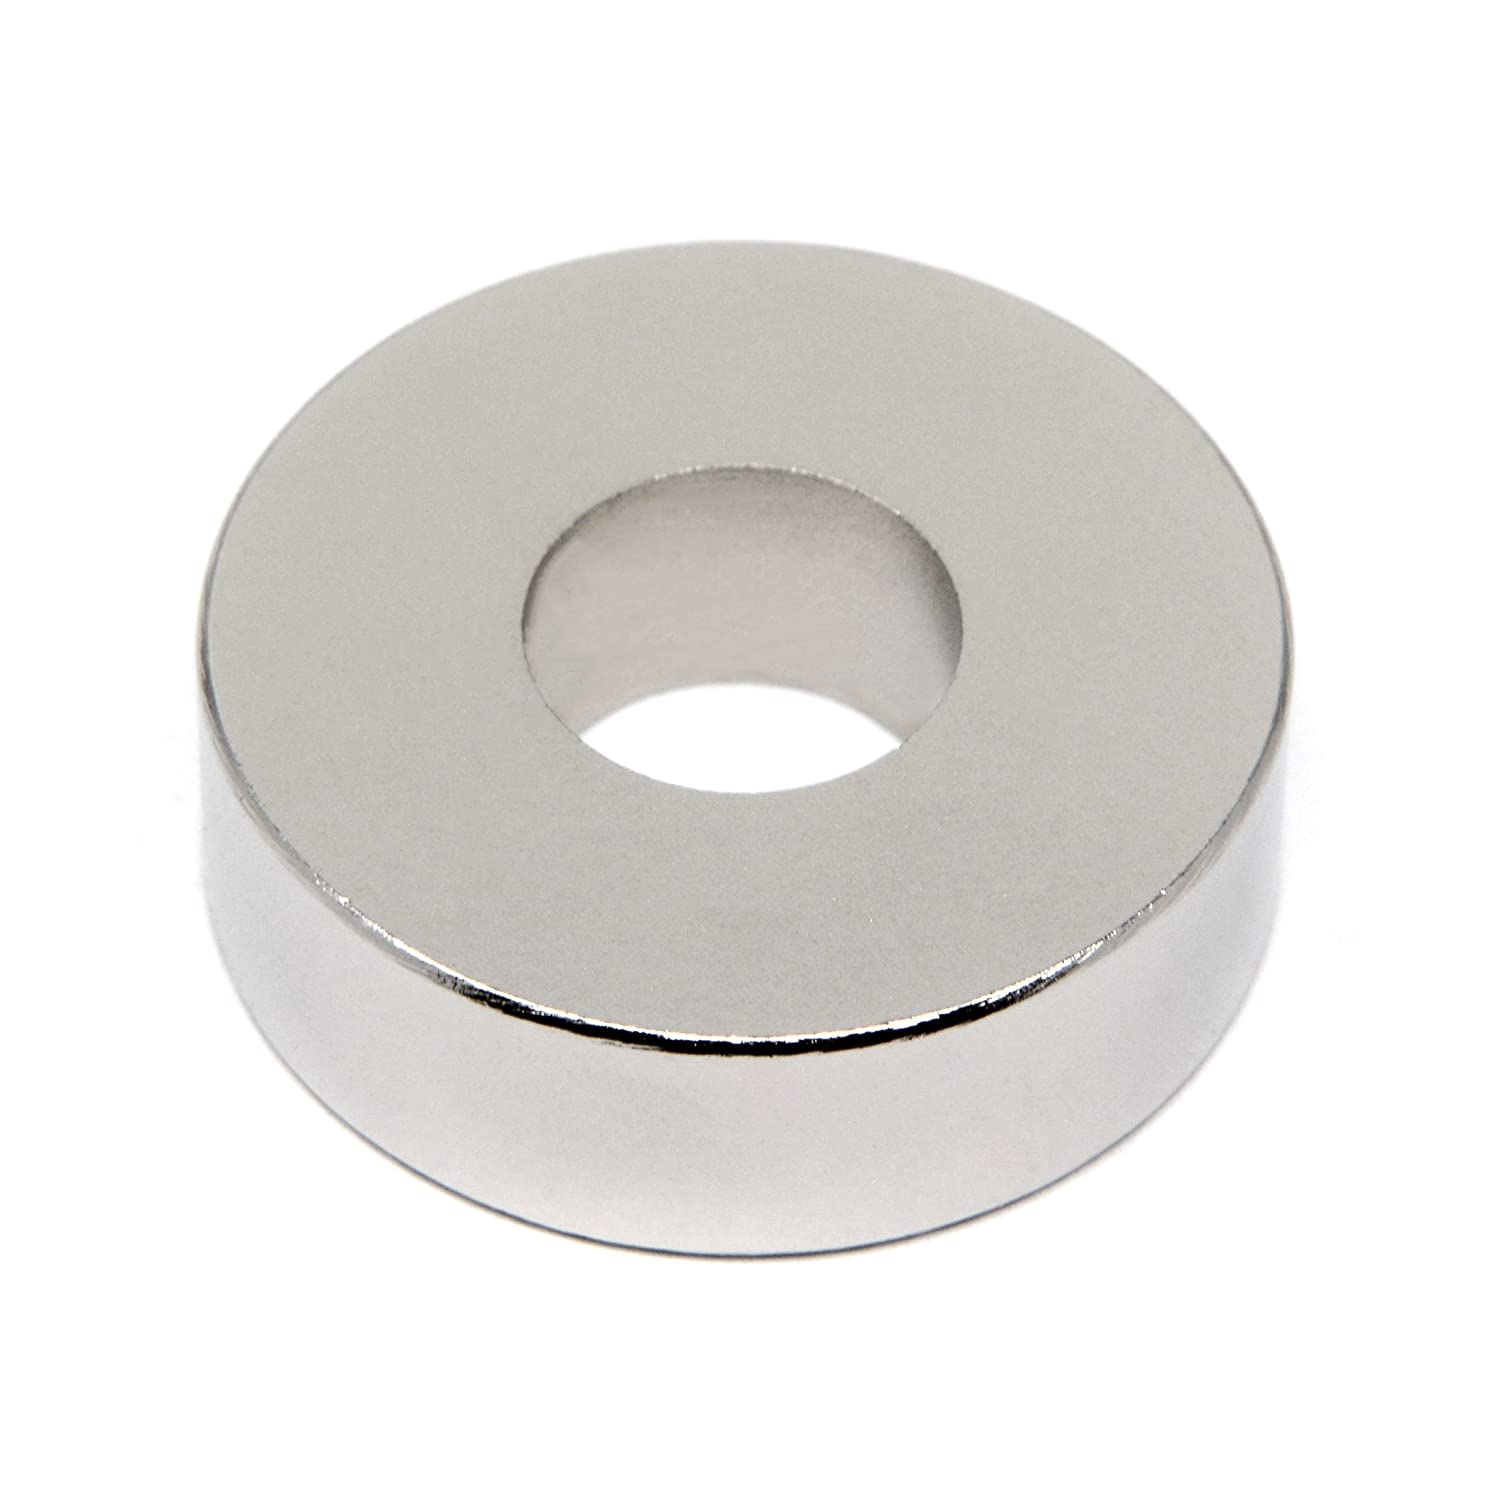 One Pack CMS Magnetics Super Strong Neodymium Magnet Ring OD1.26 x ID 1//2 x 3//8 Rare Earth Magnet Ring for Classroom Science Project and DIY Applications